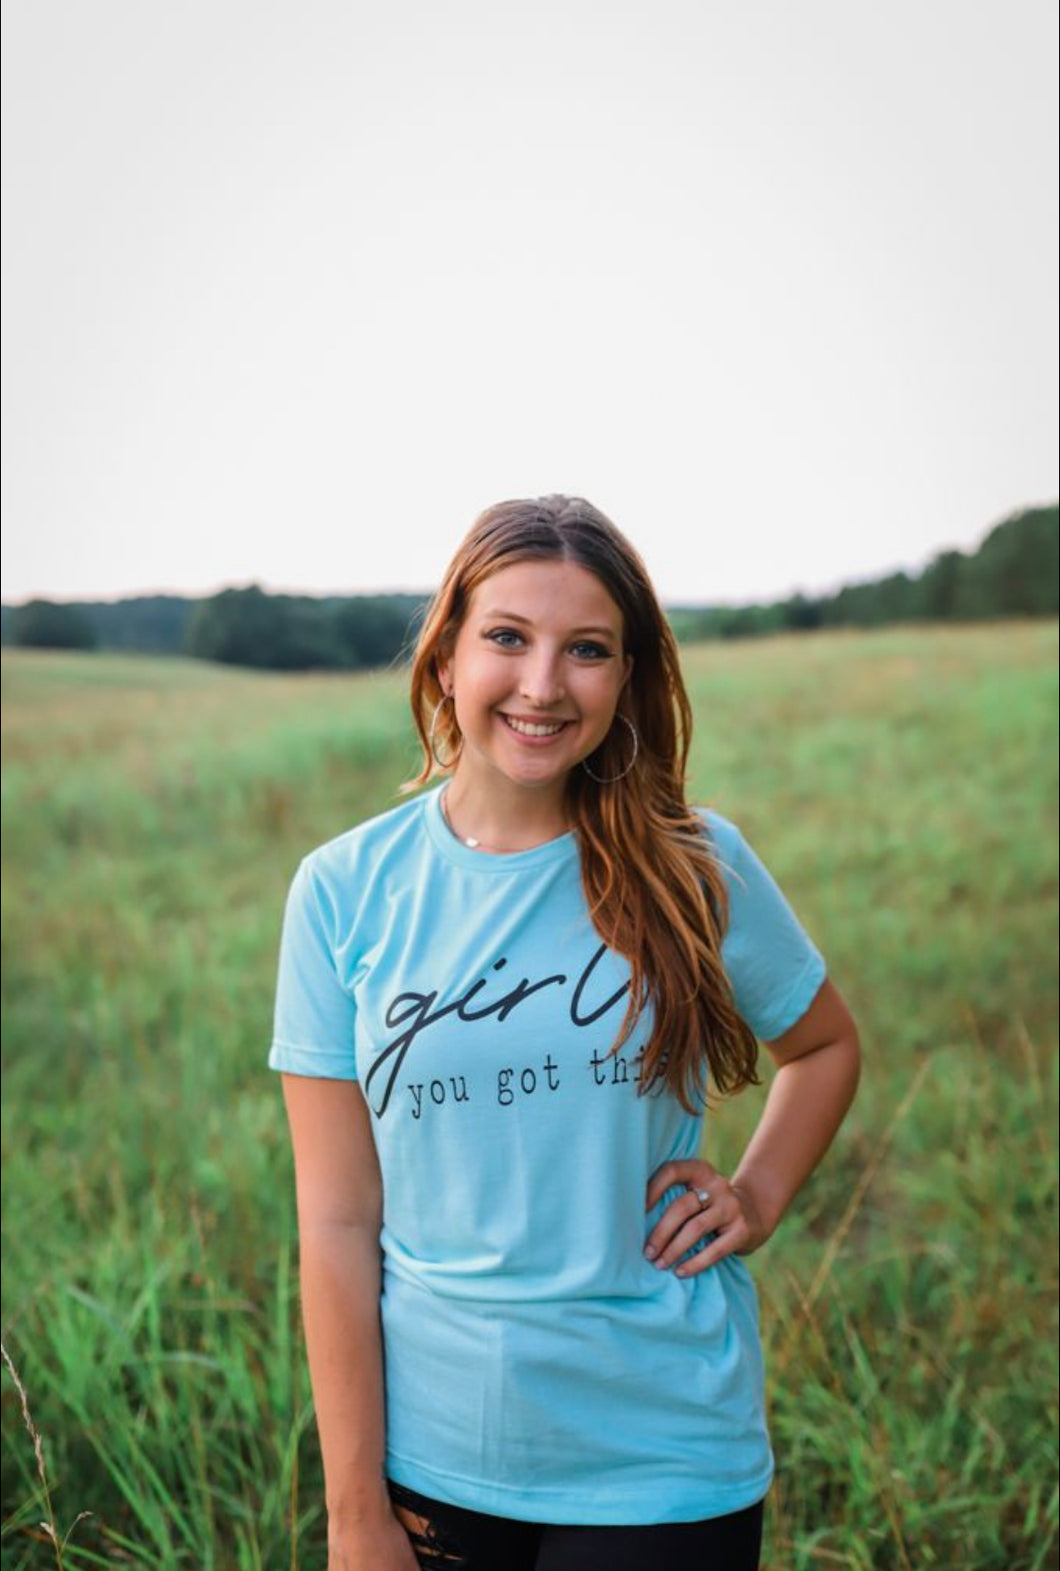 Girl, You Got This (Tultex Heather Purist Blue) Tee